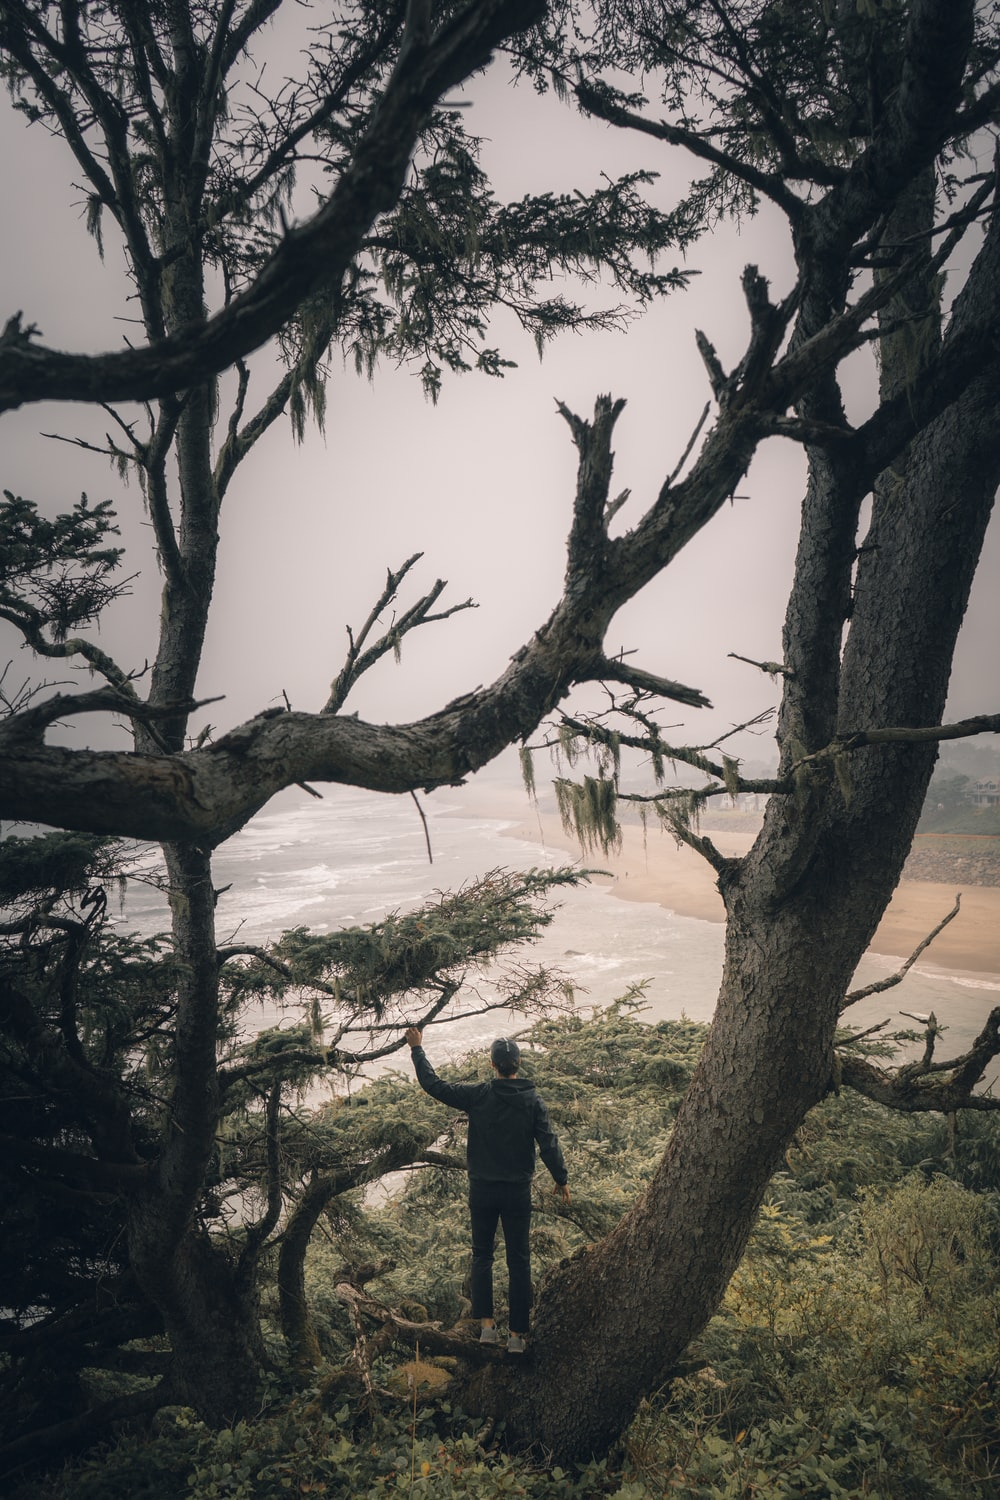 man standing on top of tree